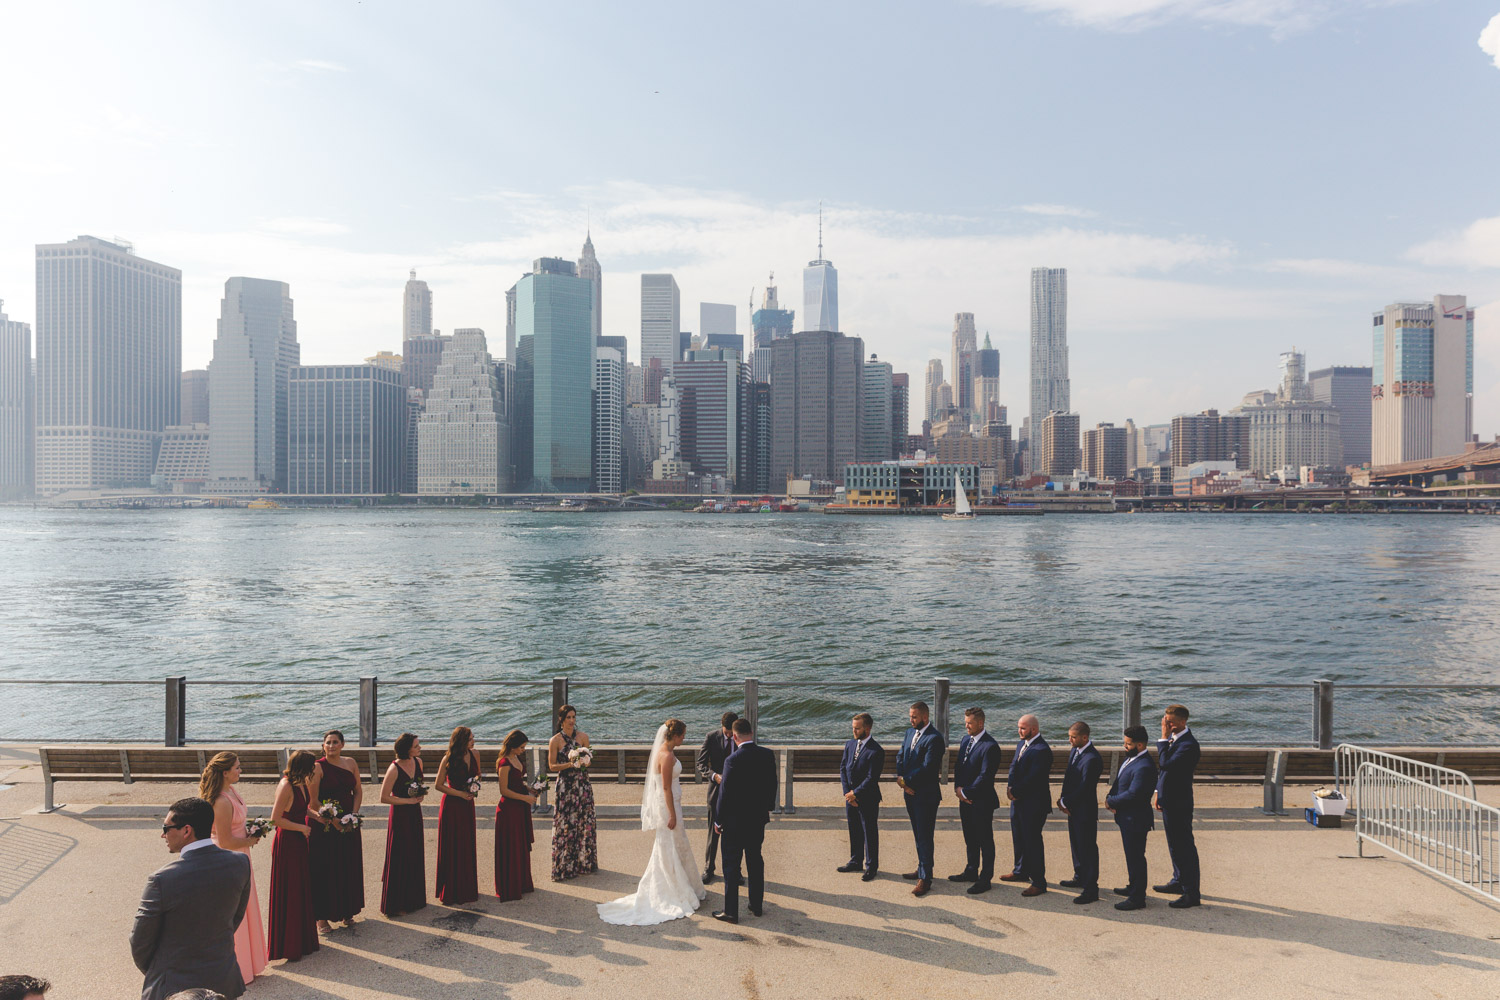 Wedding-photography-nyc-amazing-best-6.jpg